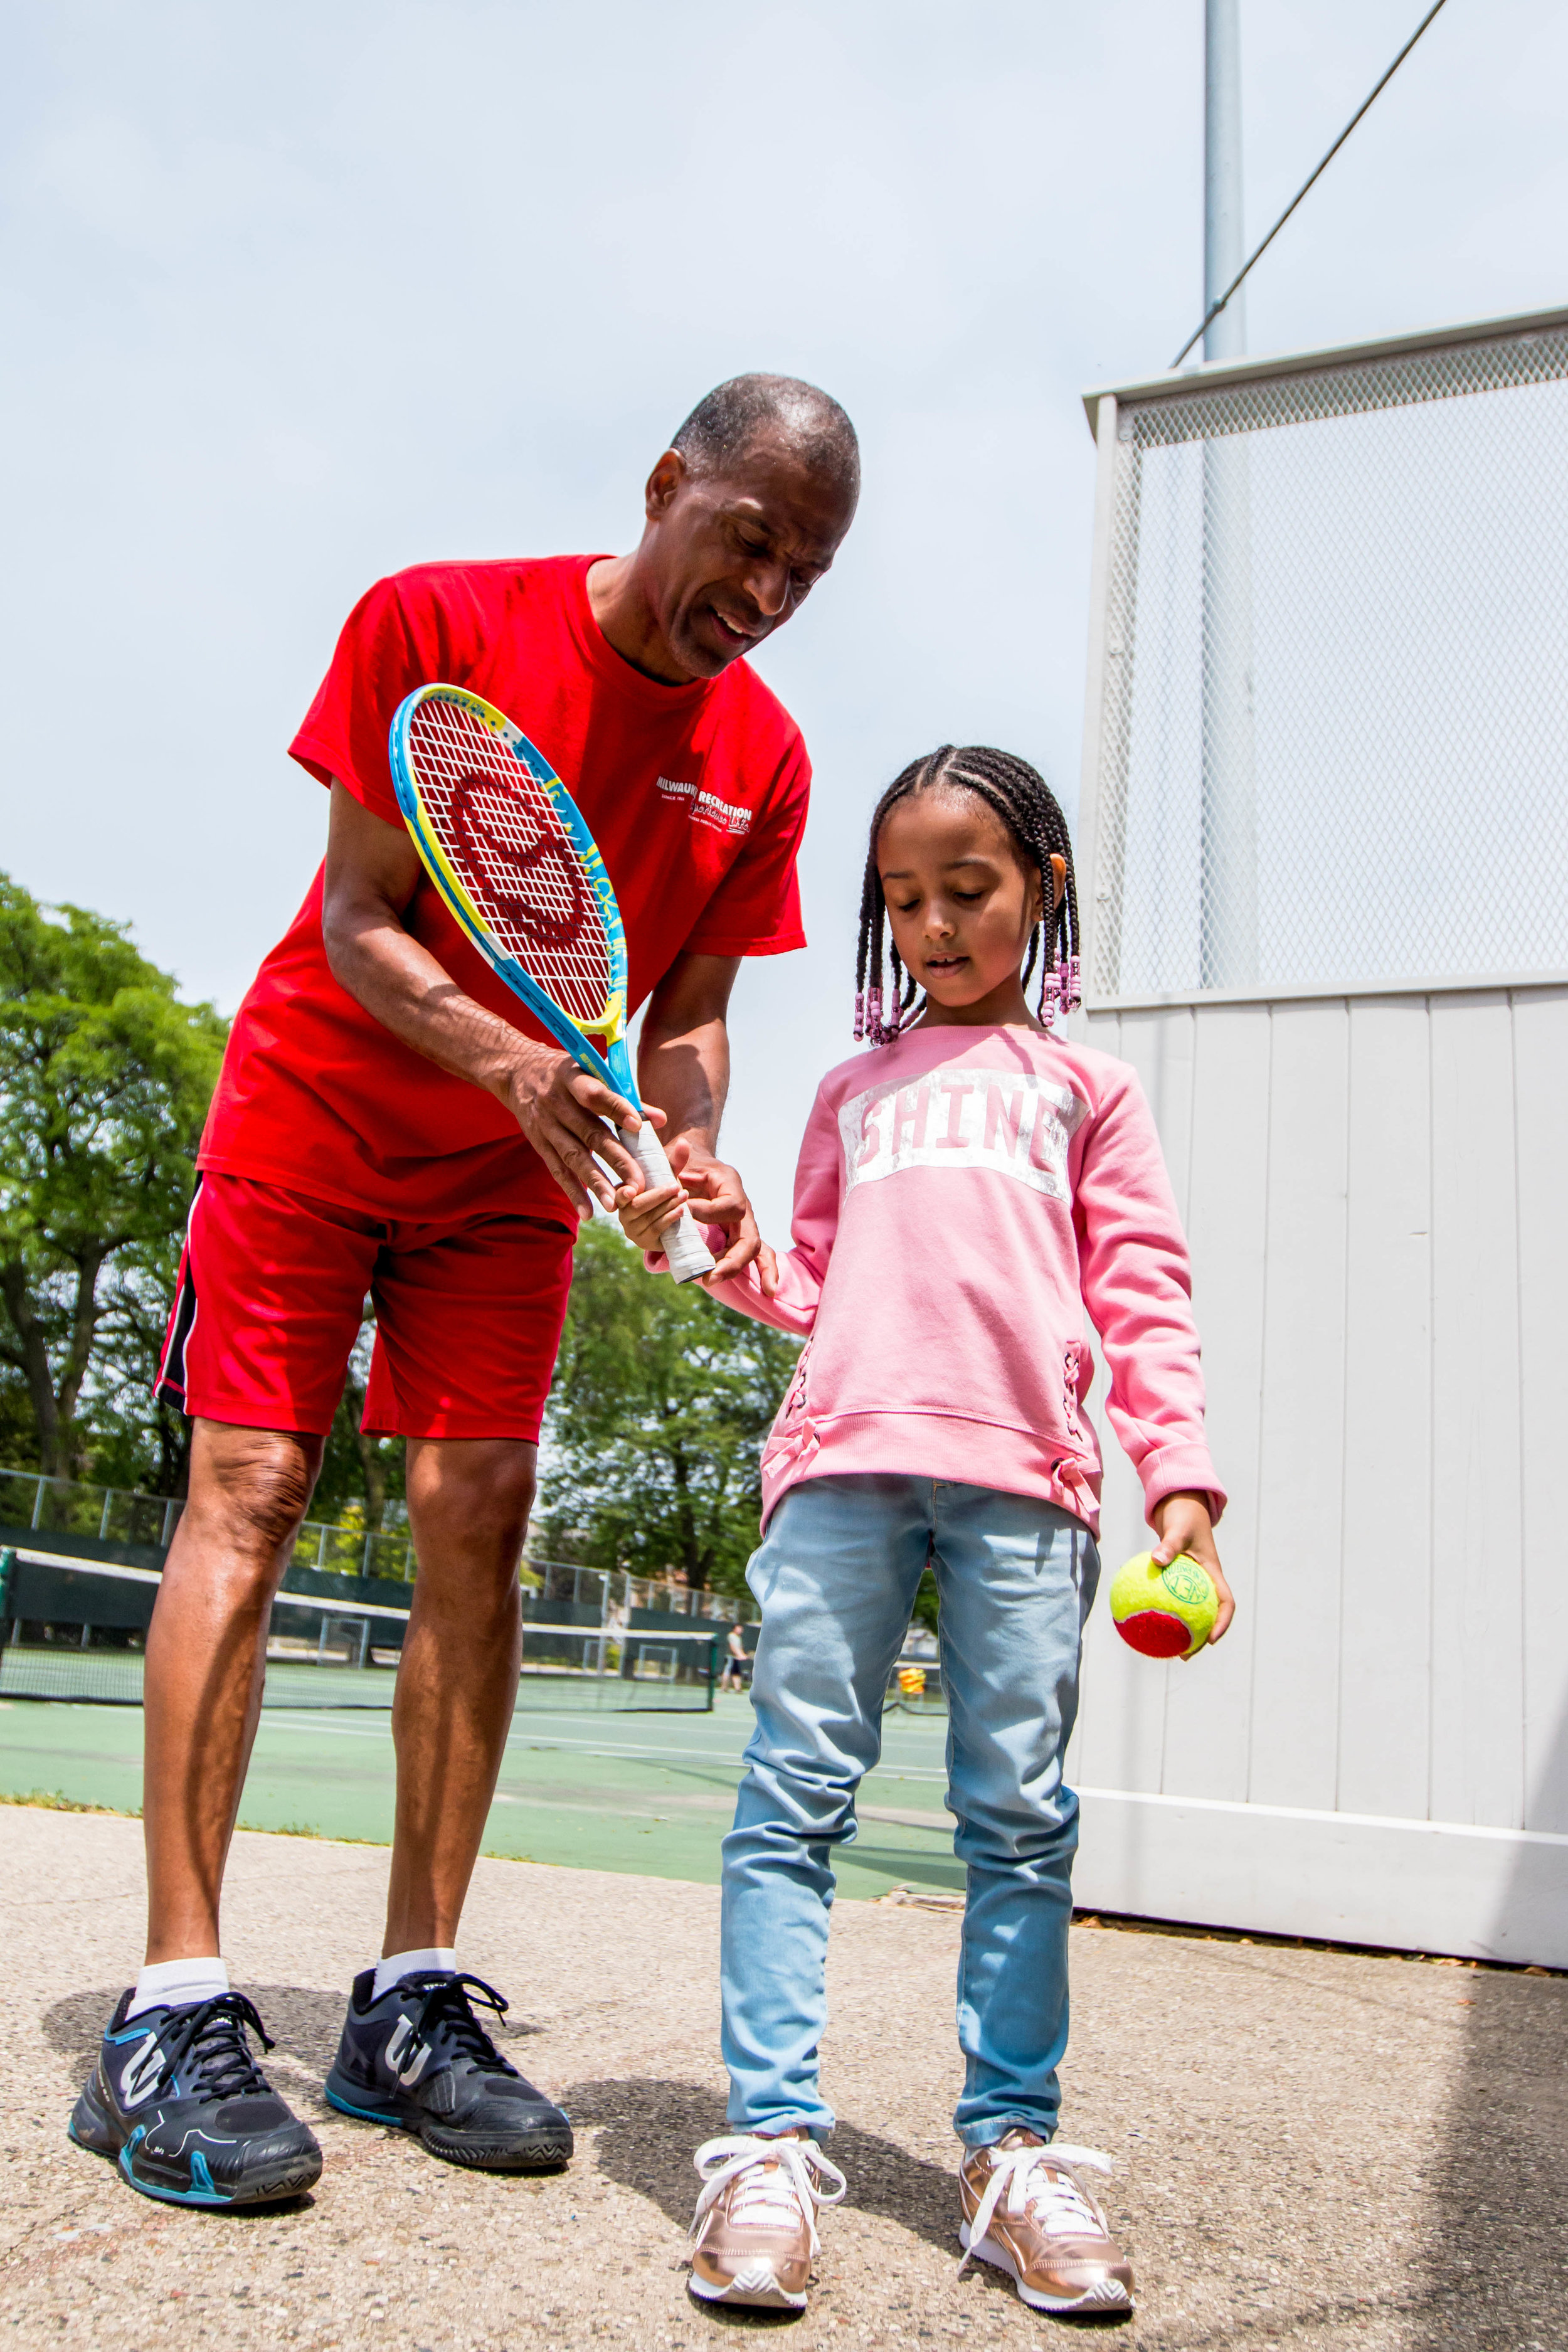 Bill of Rights for Young Athletes - 1. Right to participate in sports2. Right to participate at a level commensurate with each child's maturity and ability3. Right to have qualified adult leadership4. Right to play as a child and not as an adult5. Right of children to share in the leadership and decision-making of their sport participation6. Right to participate in safe and healthy environments7. Right to proper preparation for participation in sports8. Right to an equal opportunity to strive for success9. Right to be treated with dignity10. Right to have fun in sports(Martens & Seefeldt, 1979)